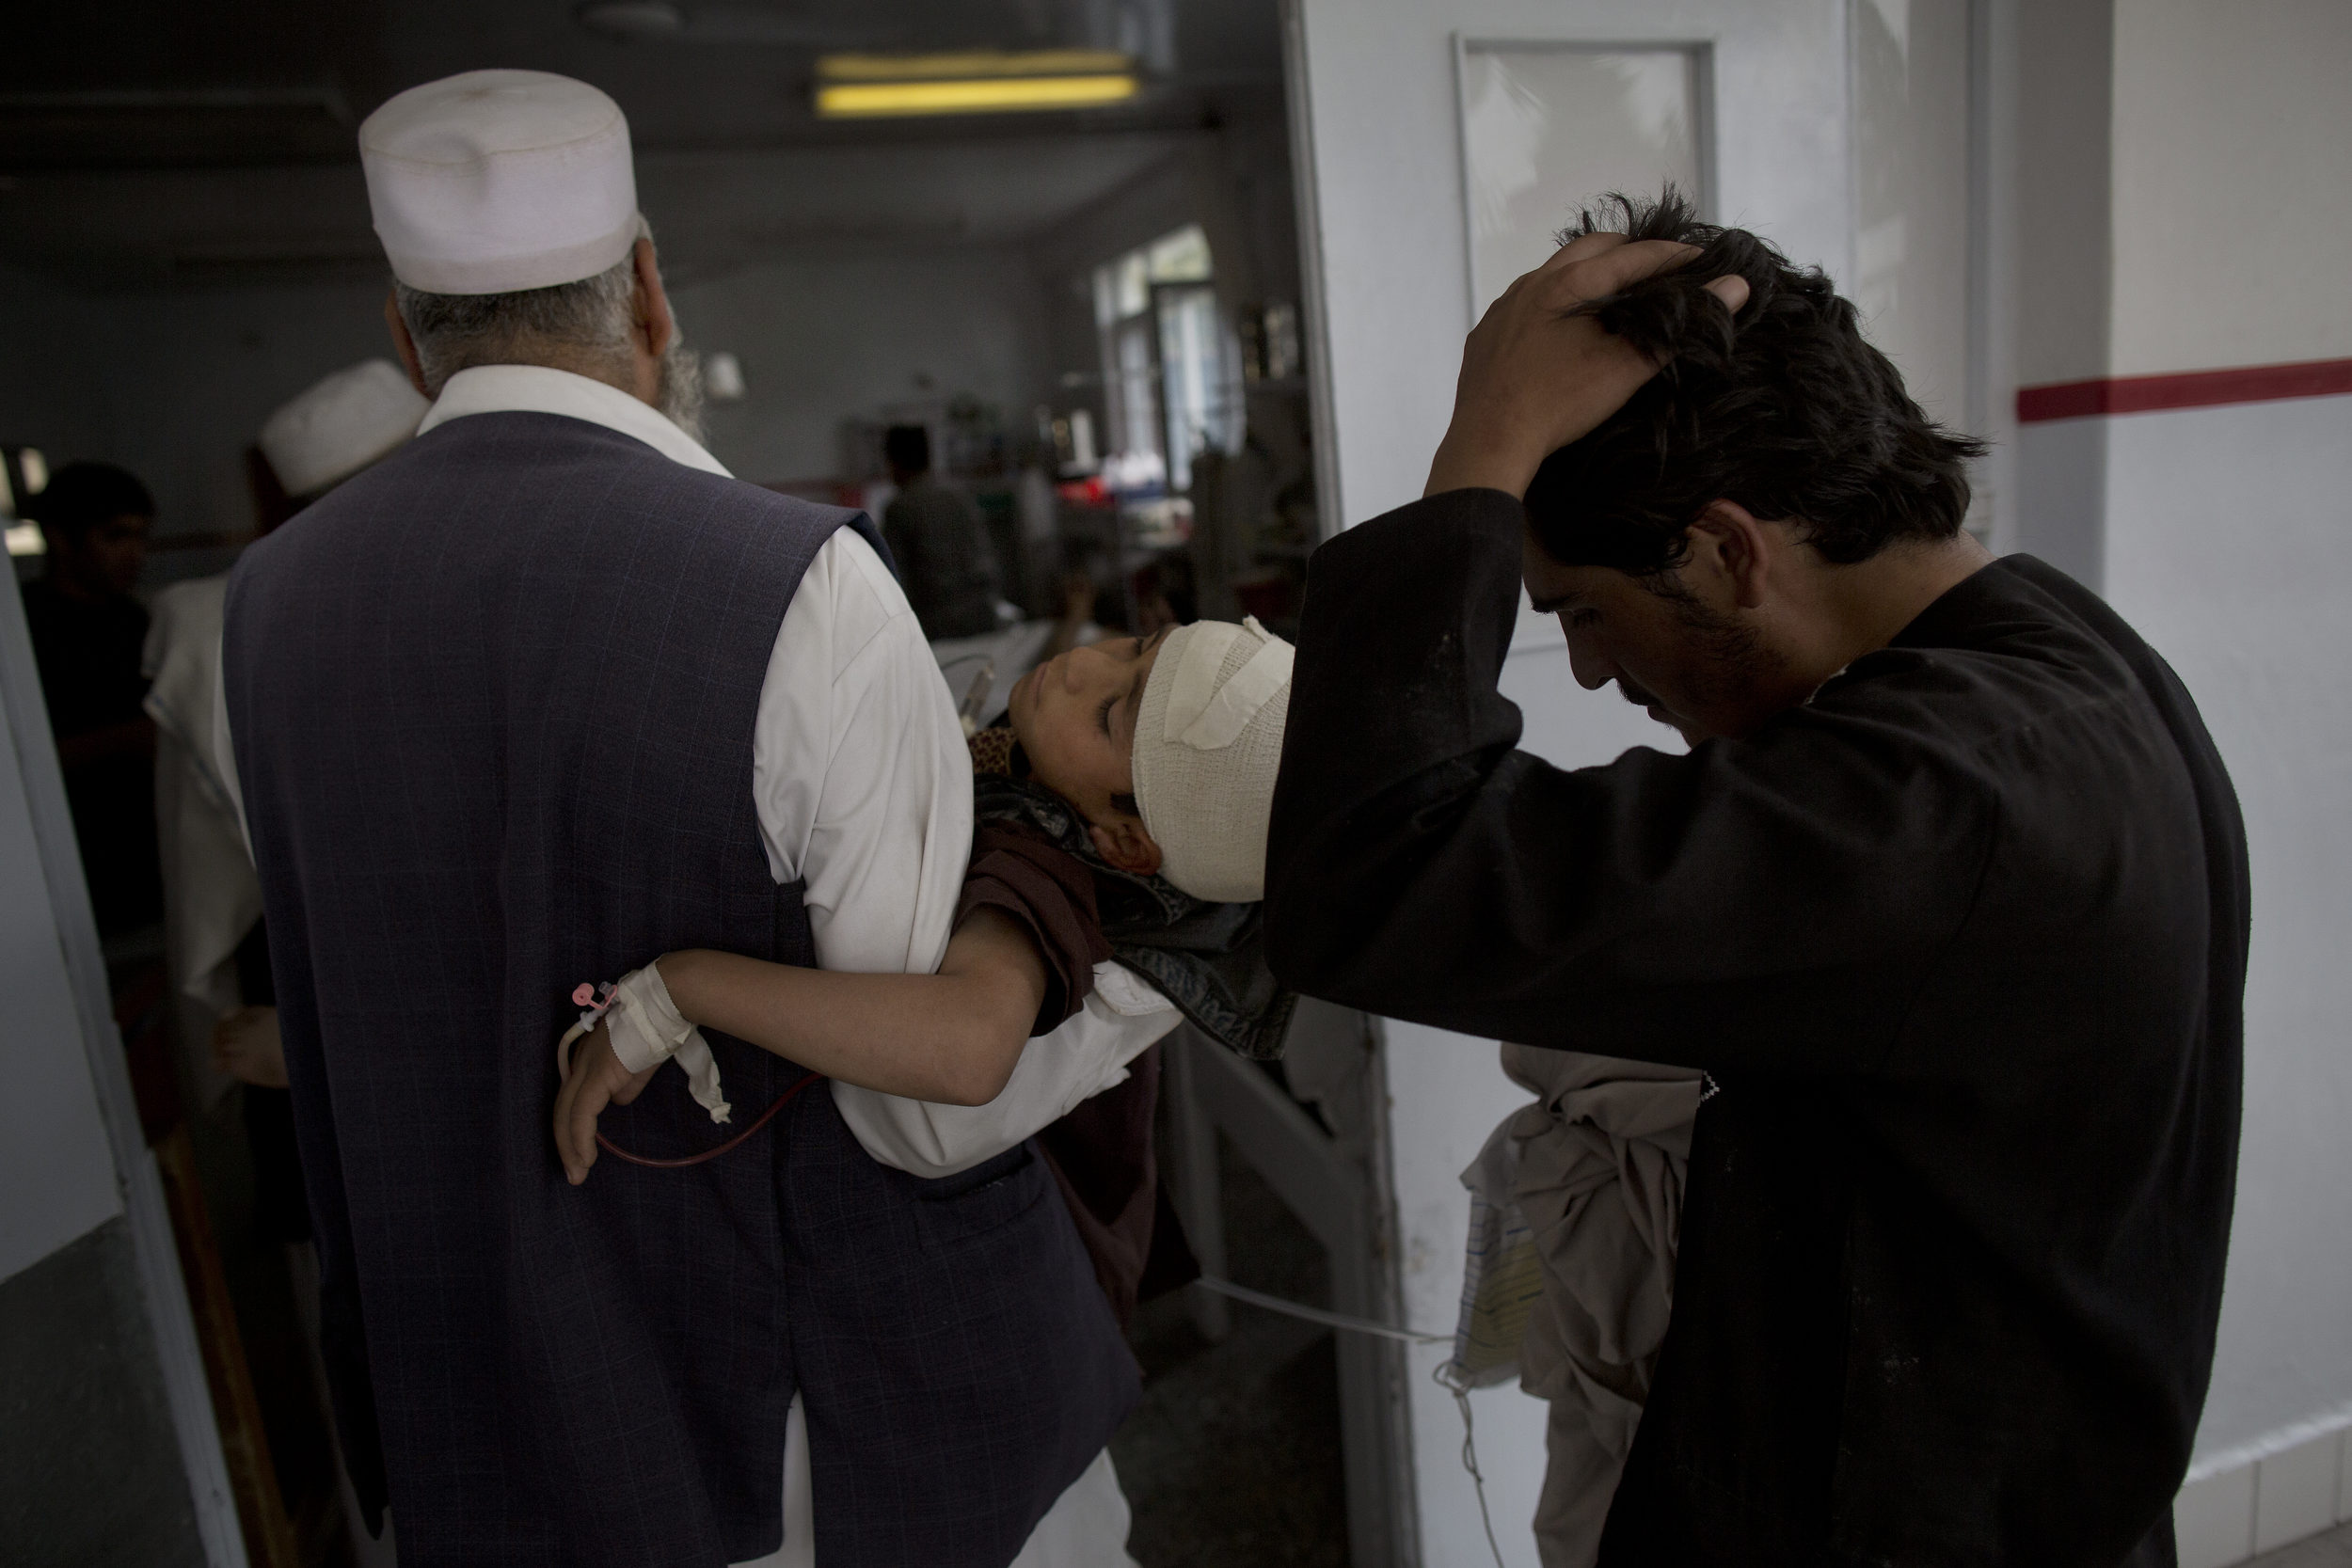 A family brings in Abdul Rashid, 10, who received shrapnel to the head in a blast